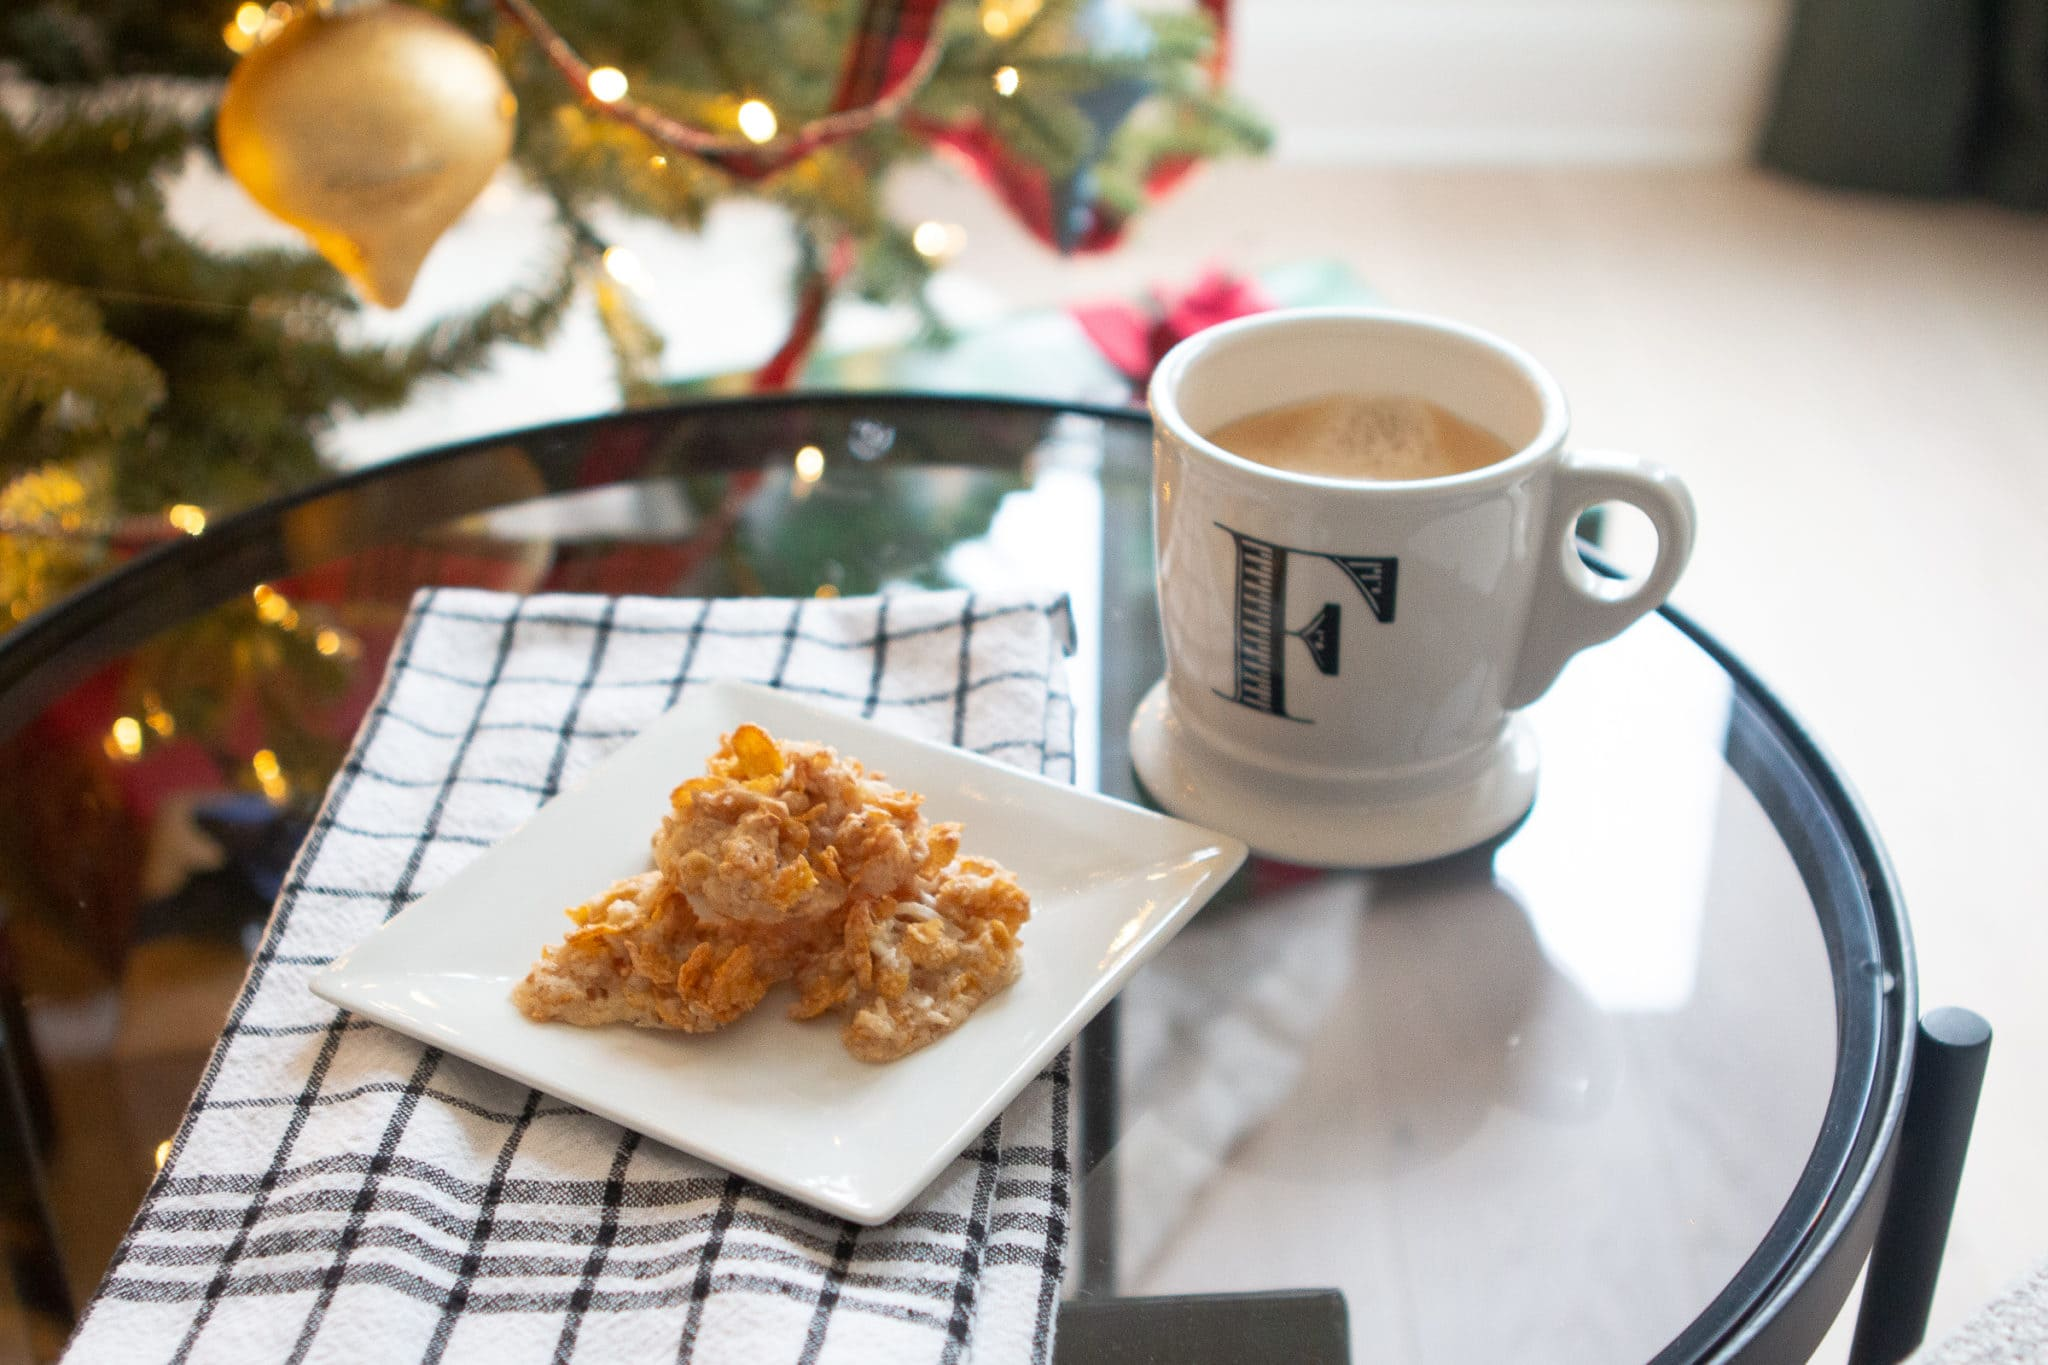 Coconut crispies cookie recipe for Christmas